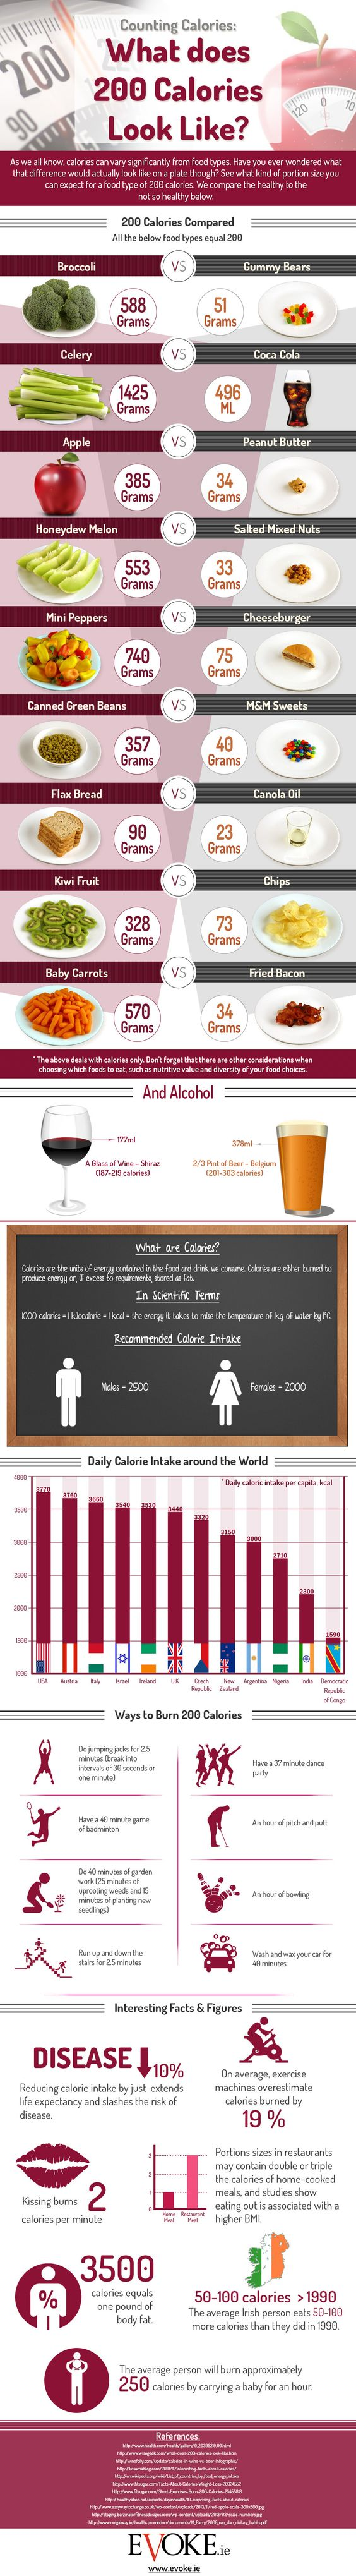 What Does 200 Calories Look Like? #infographic